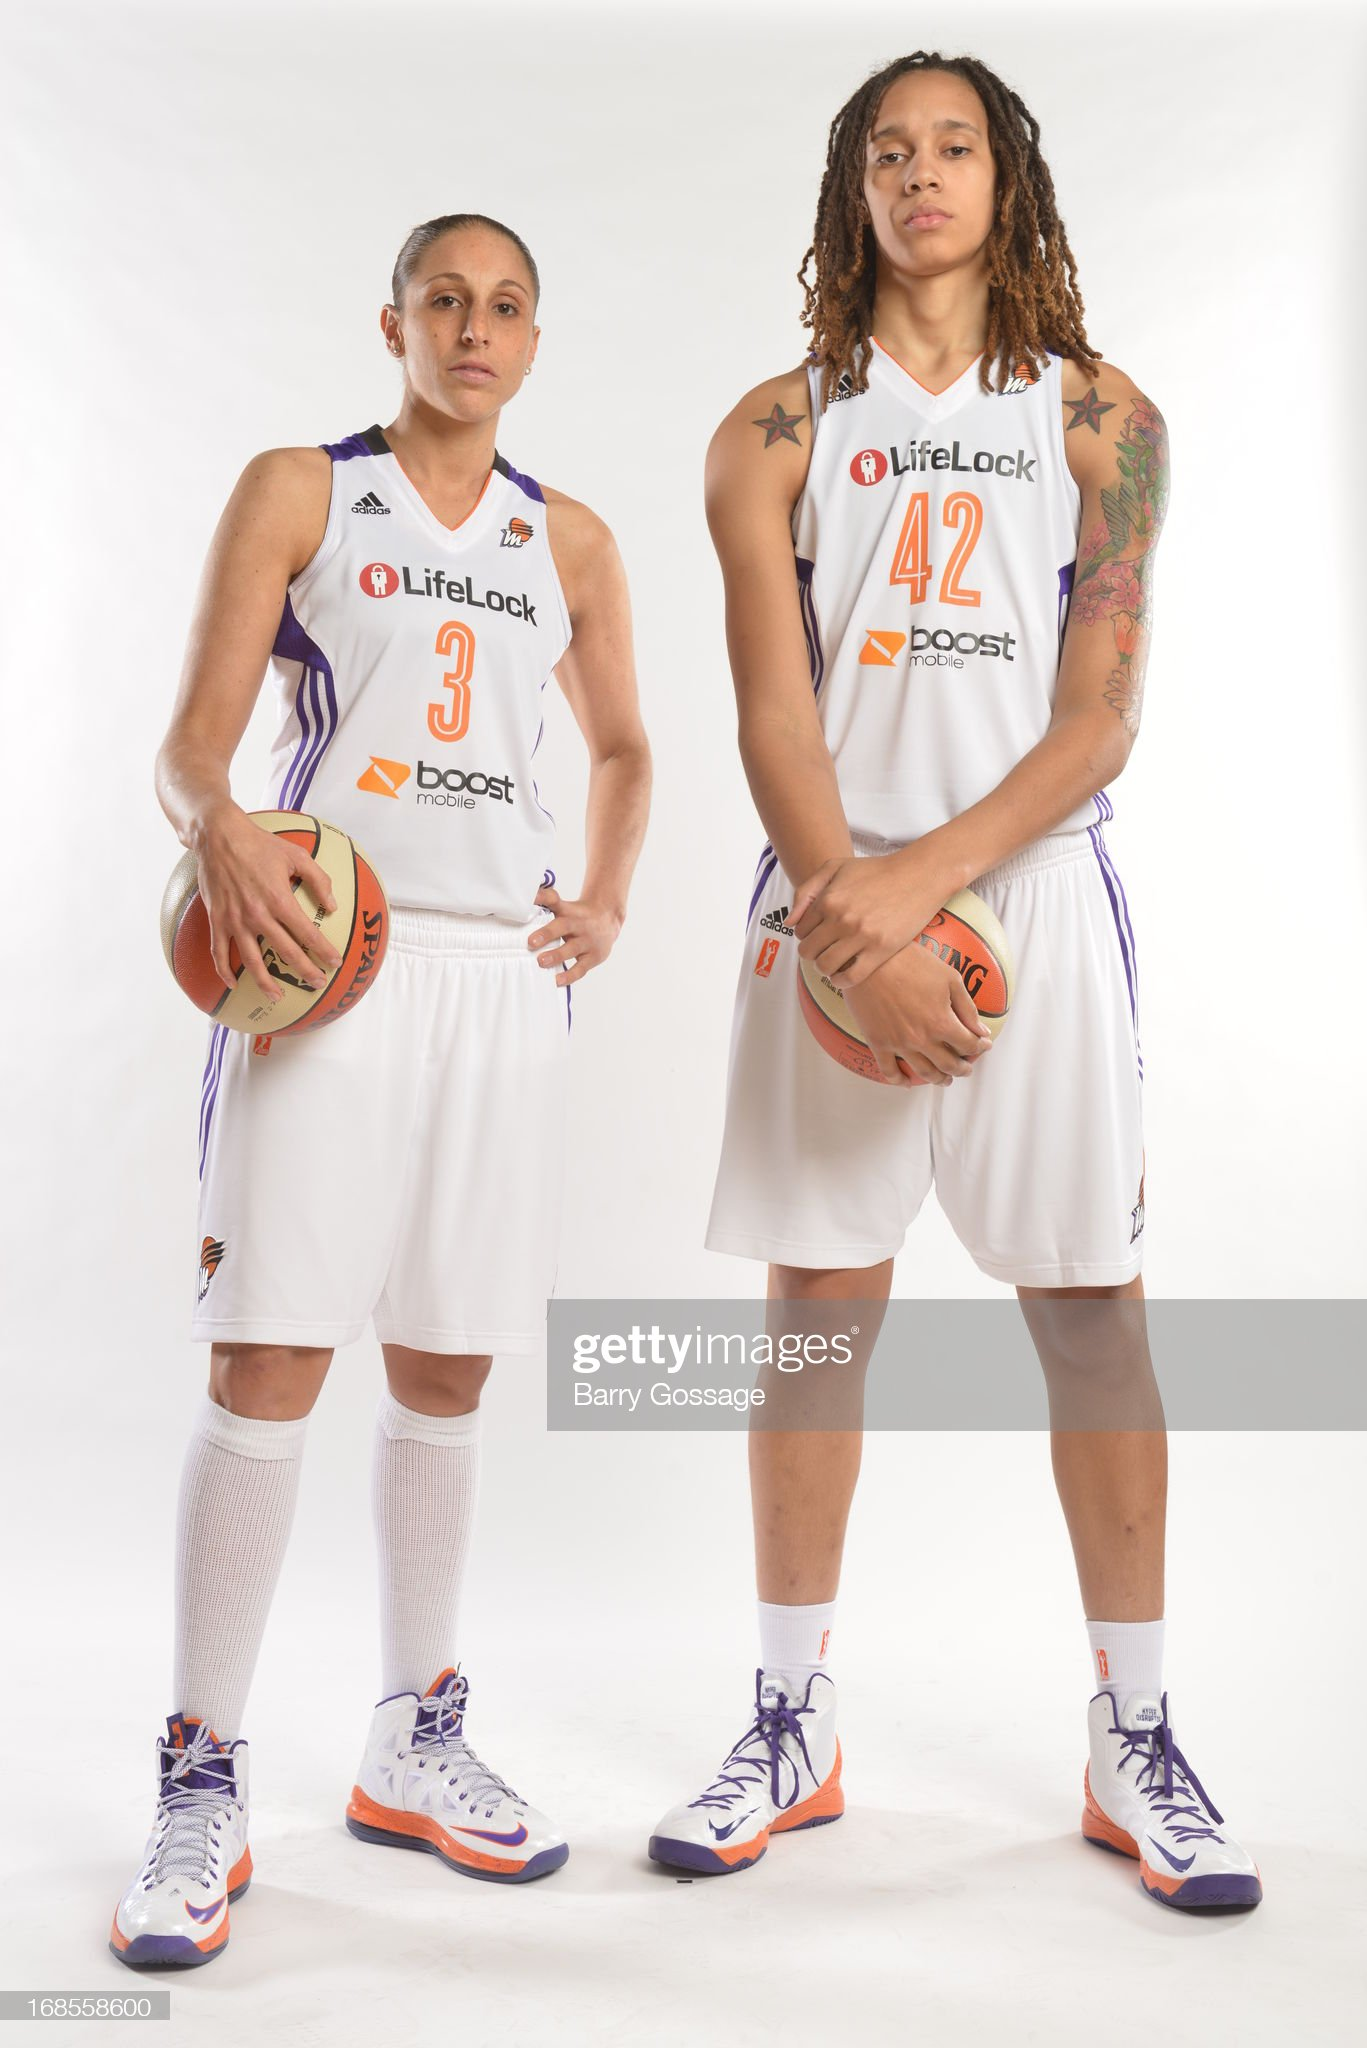 ¿Cuánto mide Brittney Griner? - Altura - Real height Diana-taurasi-and-brittney-griner-of-the-phoenix-mercury-poses-for-a-picture-id168558600?s=2048x2048